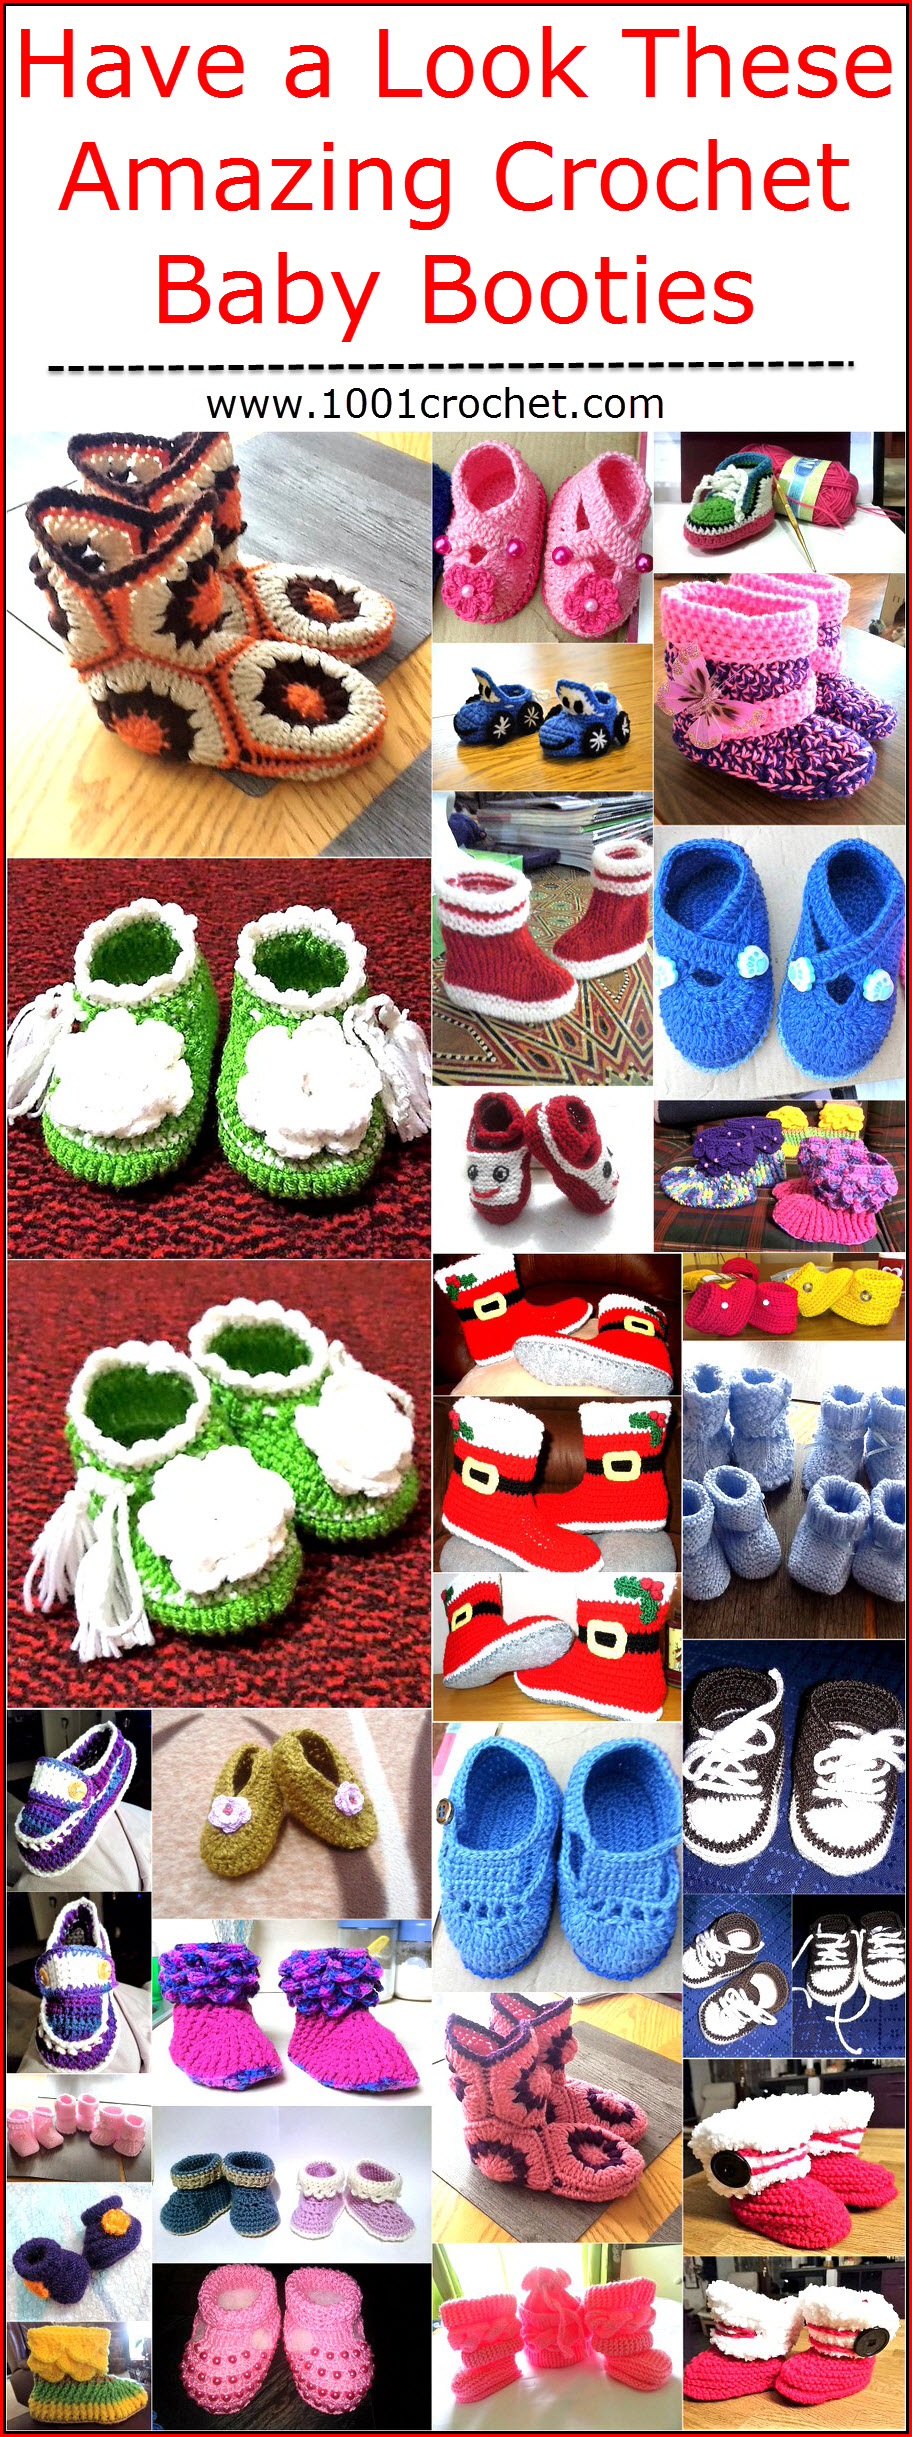 have-a-look-these-amazing-crochet-baby-booties